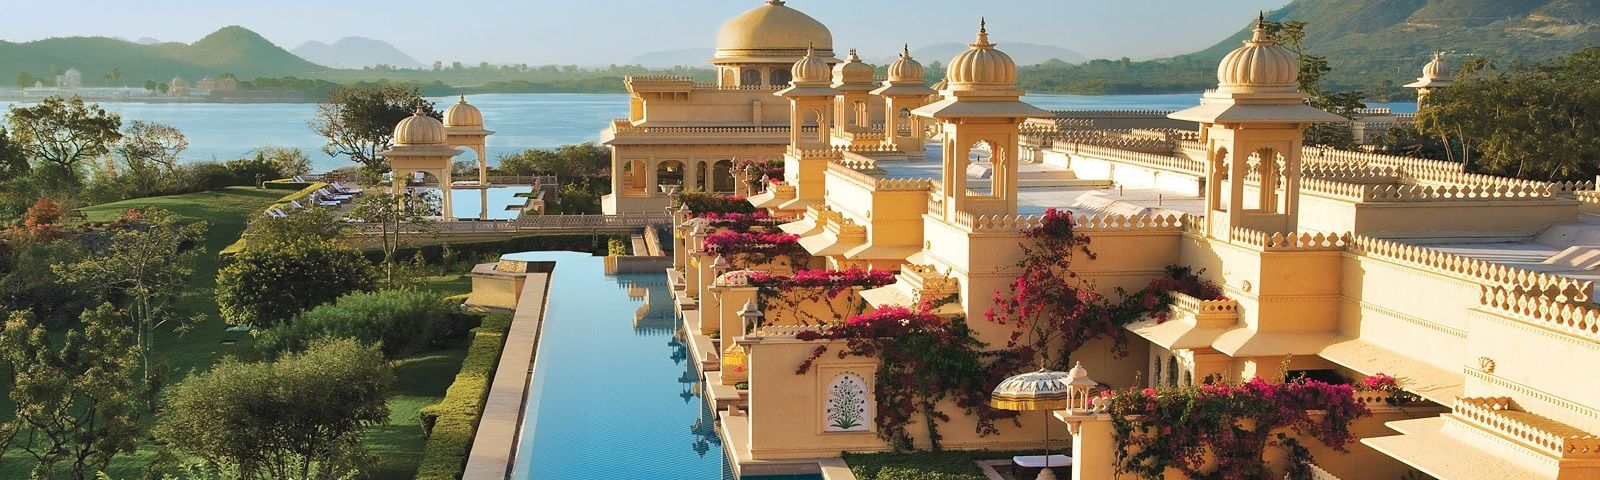 Oberoi Udaivilas Hotels in Udaipur India Vacation